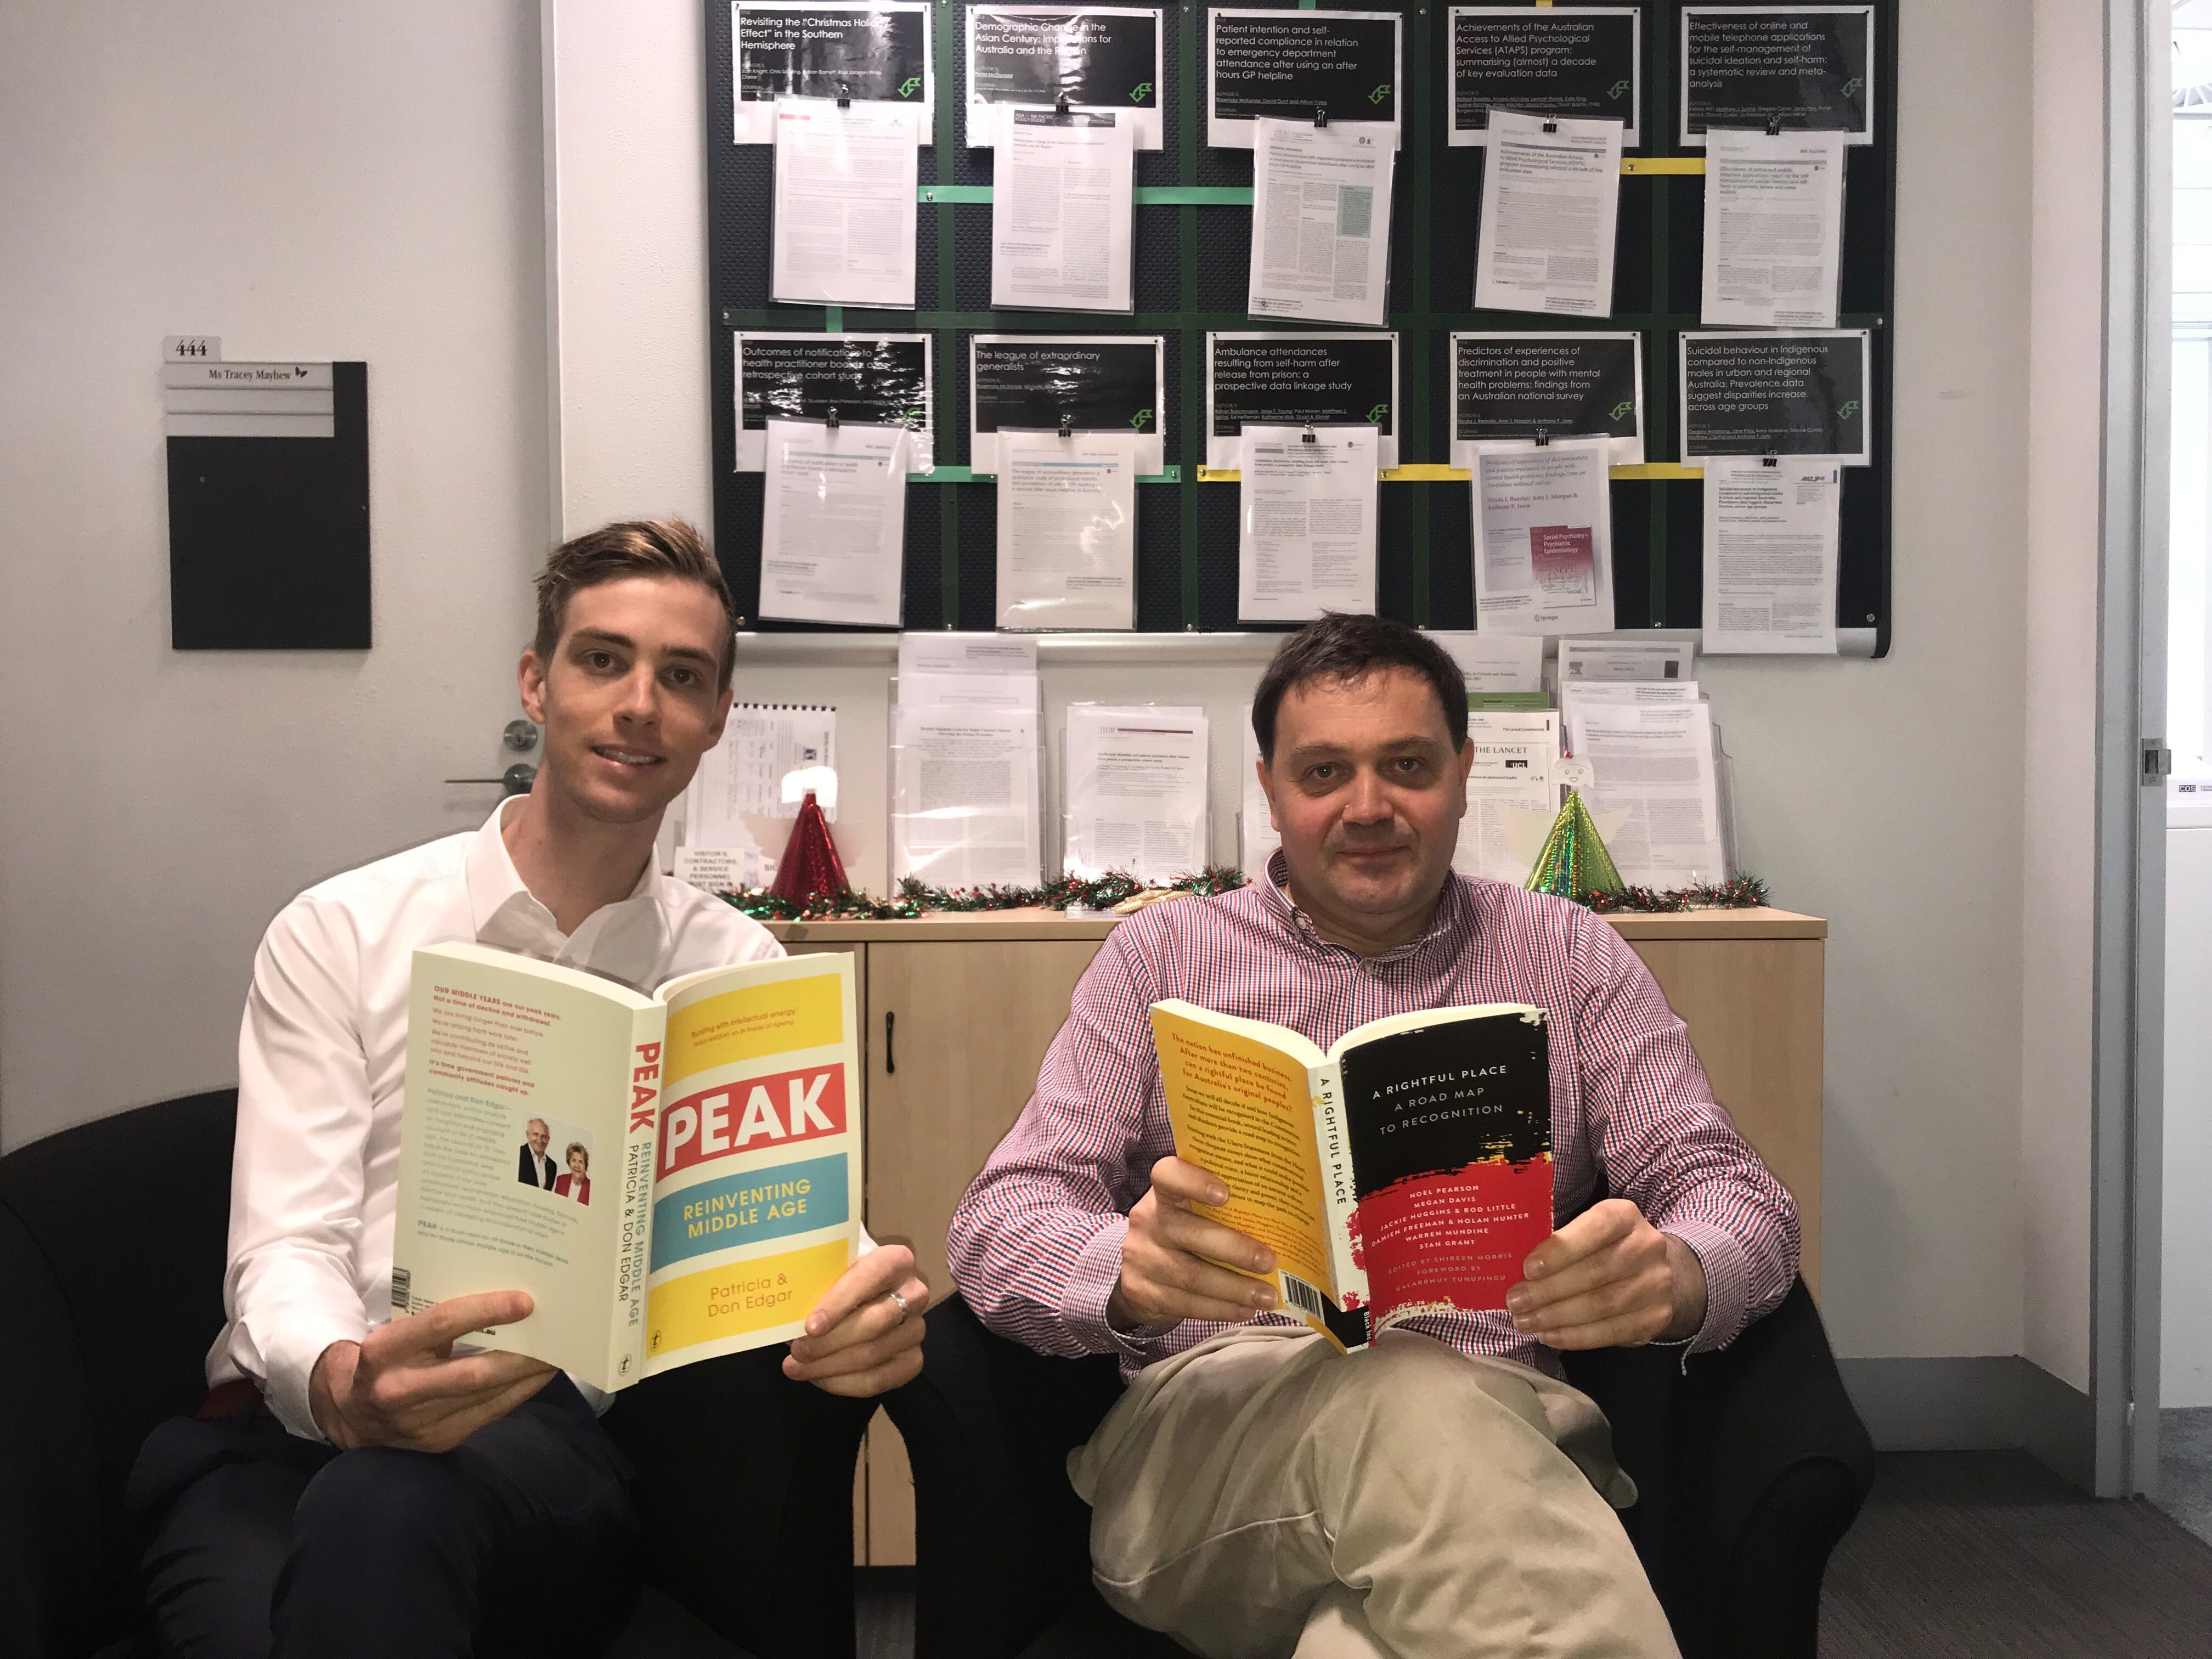 Some recommended reading from Jay Stiles and Professor Philip Clarke